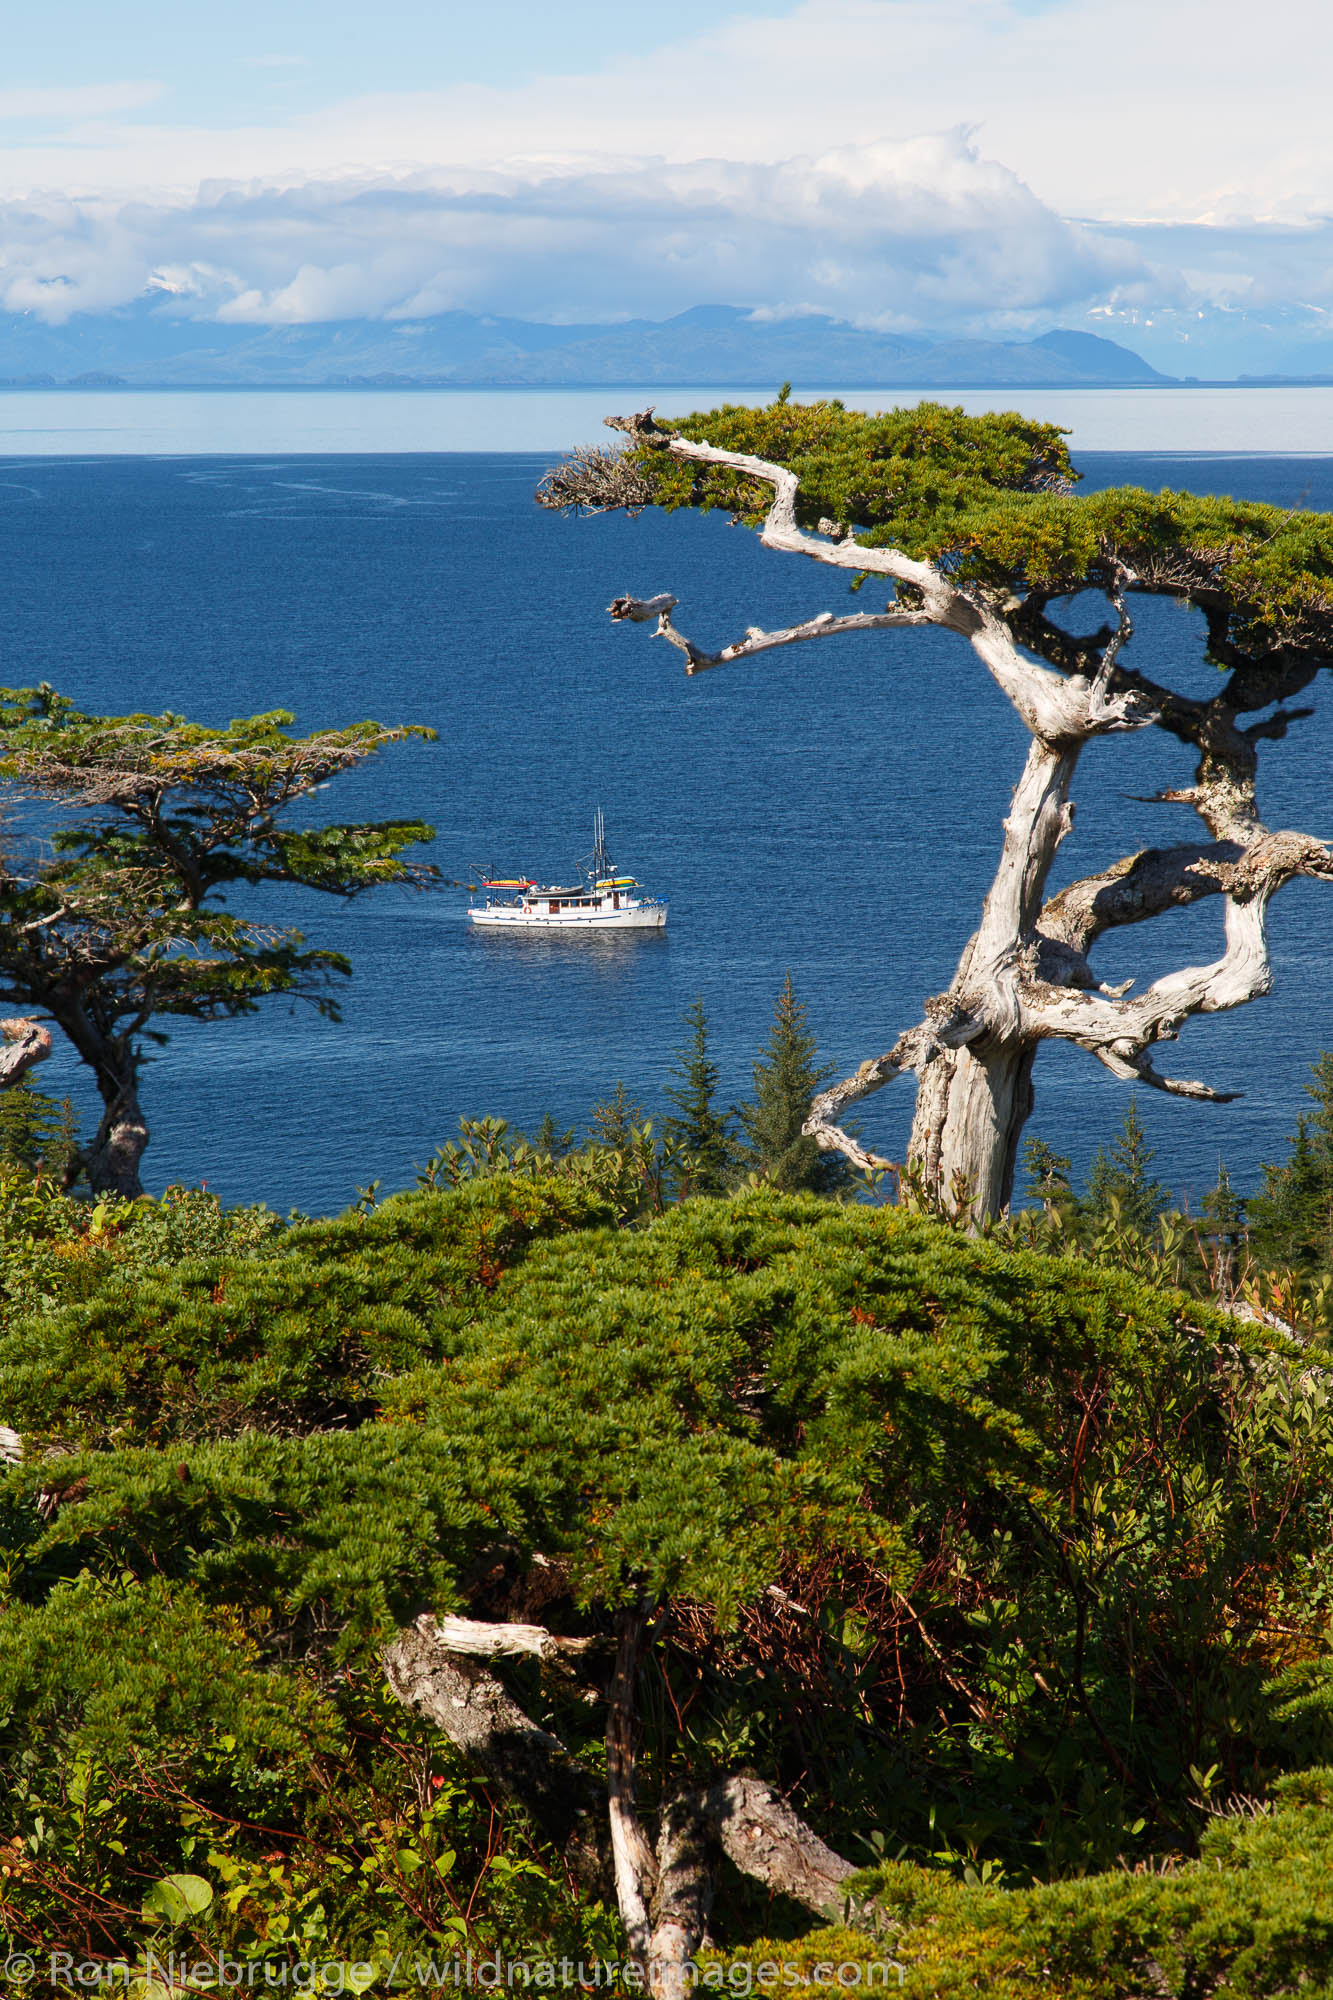 The Discovery at Knight Island, Prince William Sound, Chugach National Forest, Alaska.